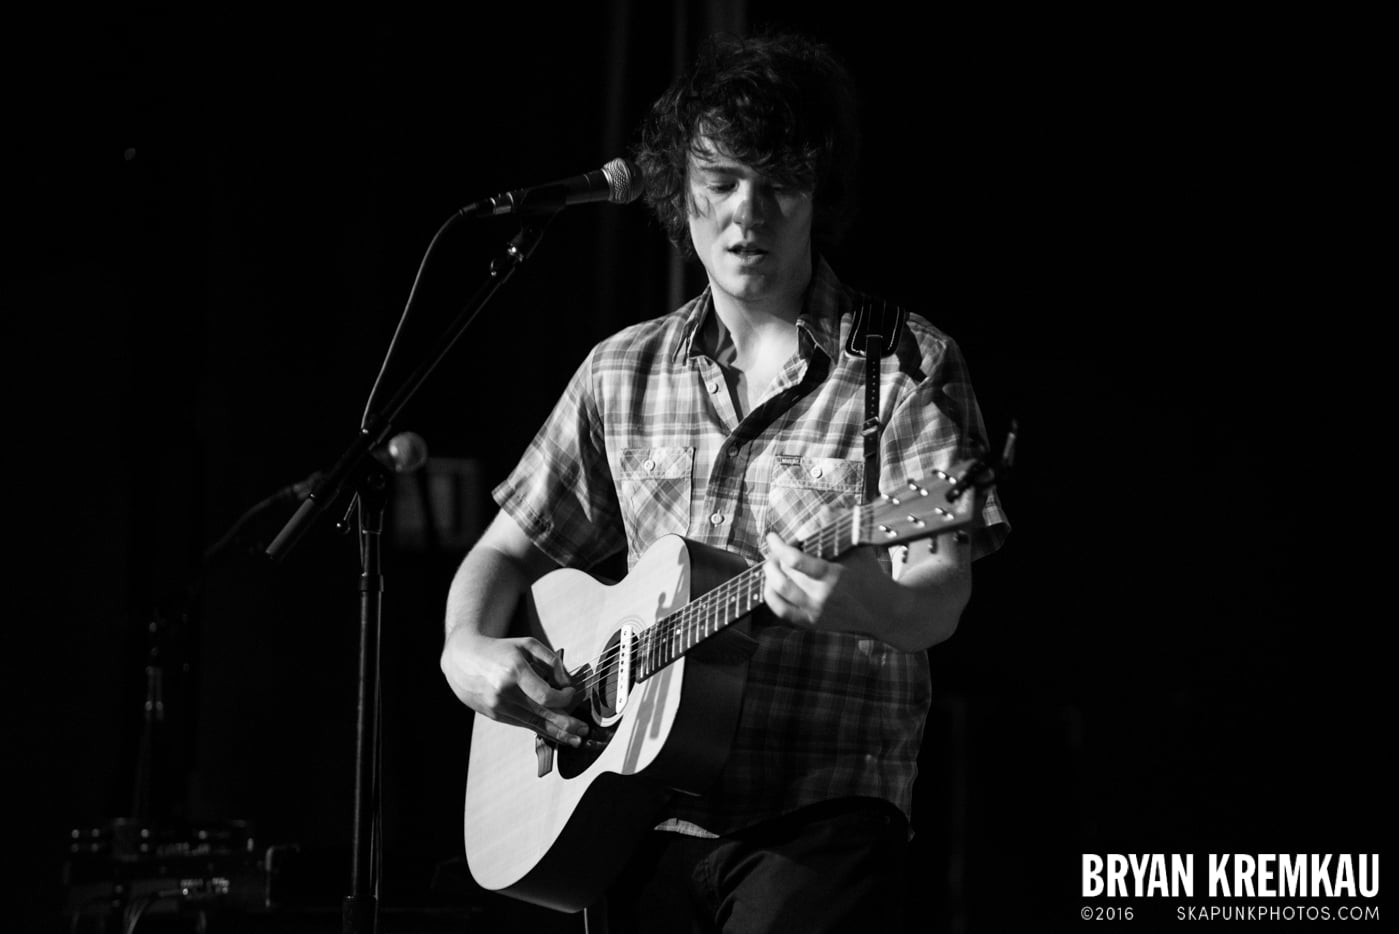 Trapper Schoepp @ City Winery, NYC - 6.26.13 (11)